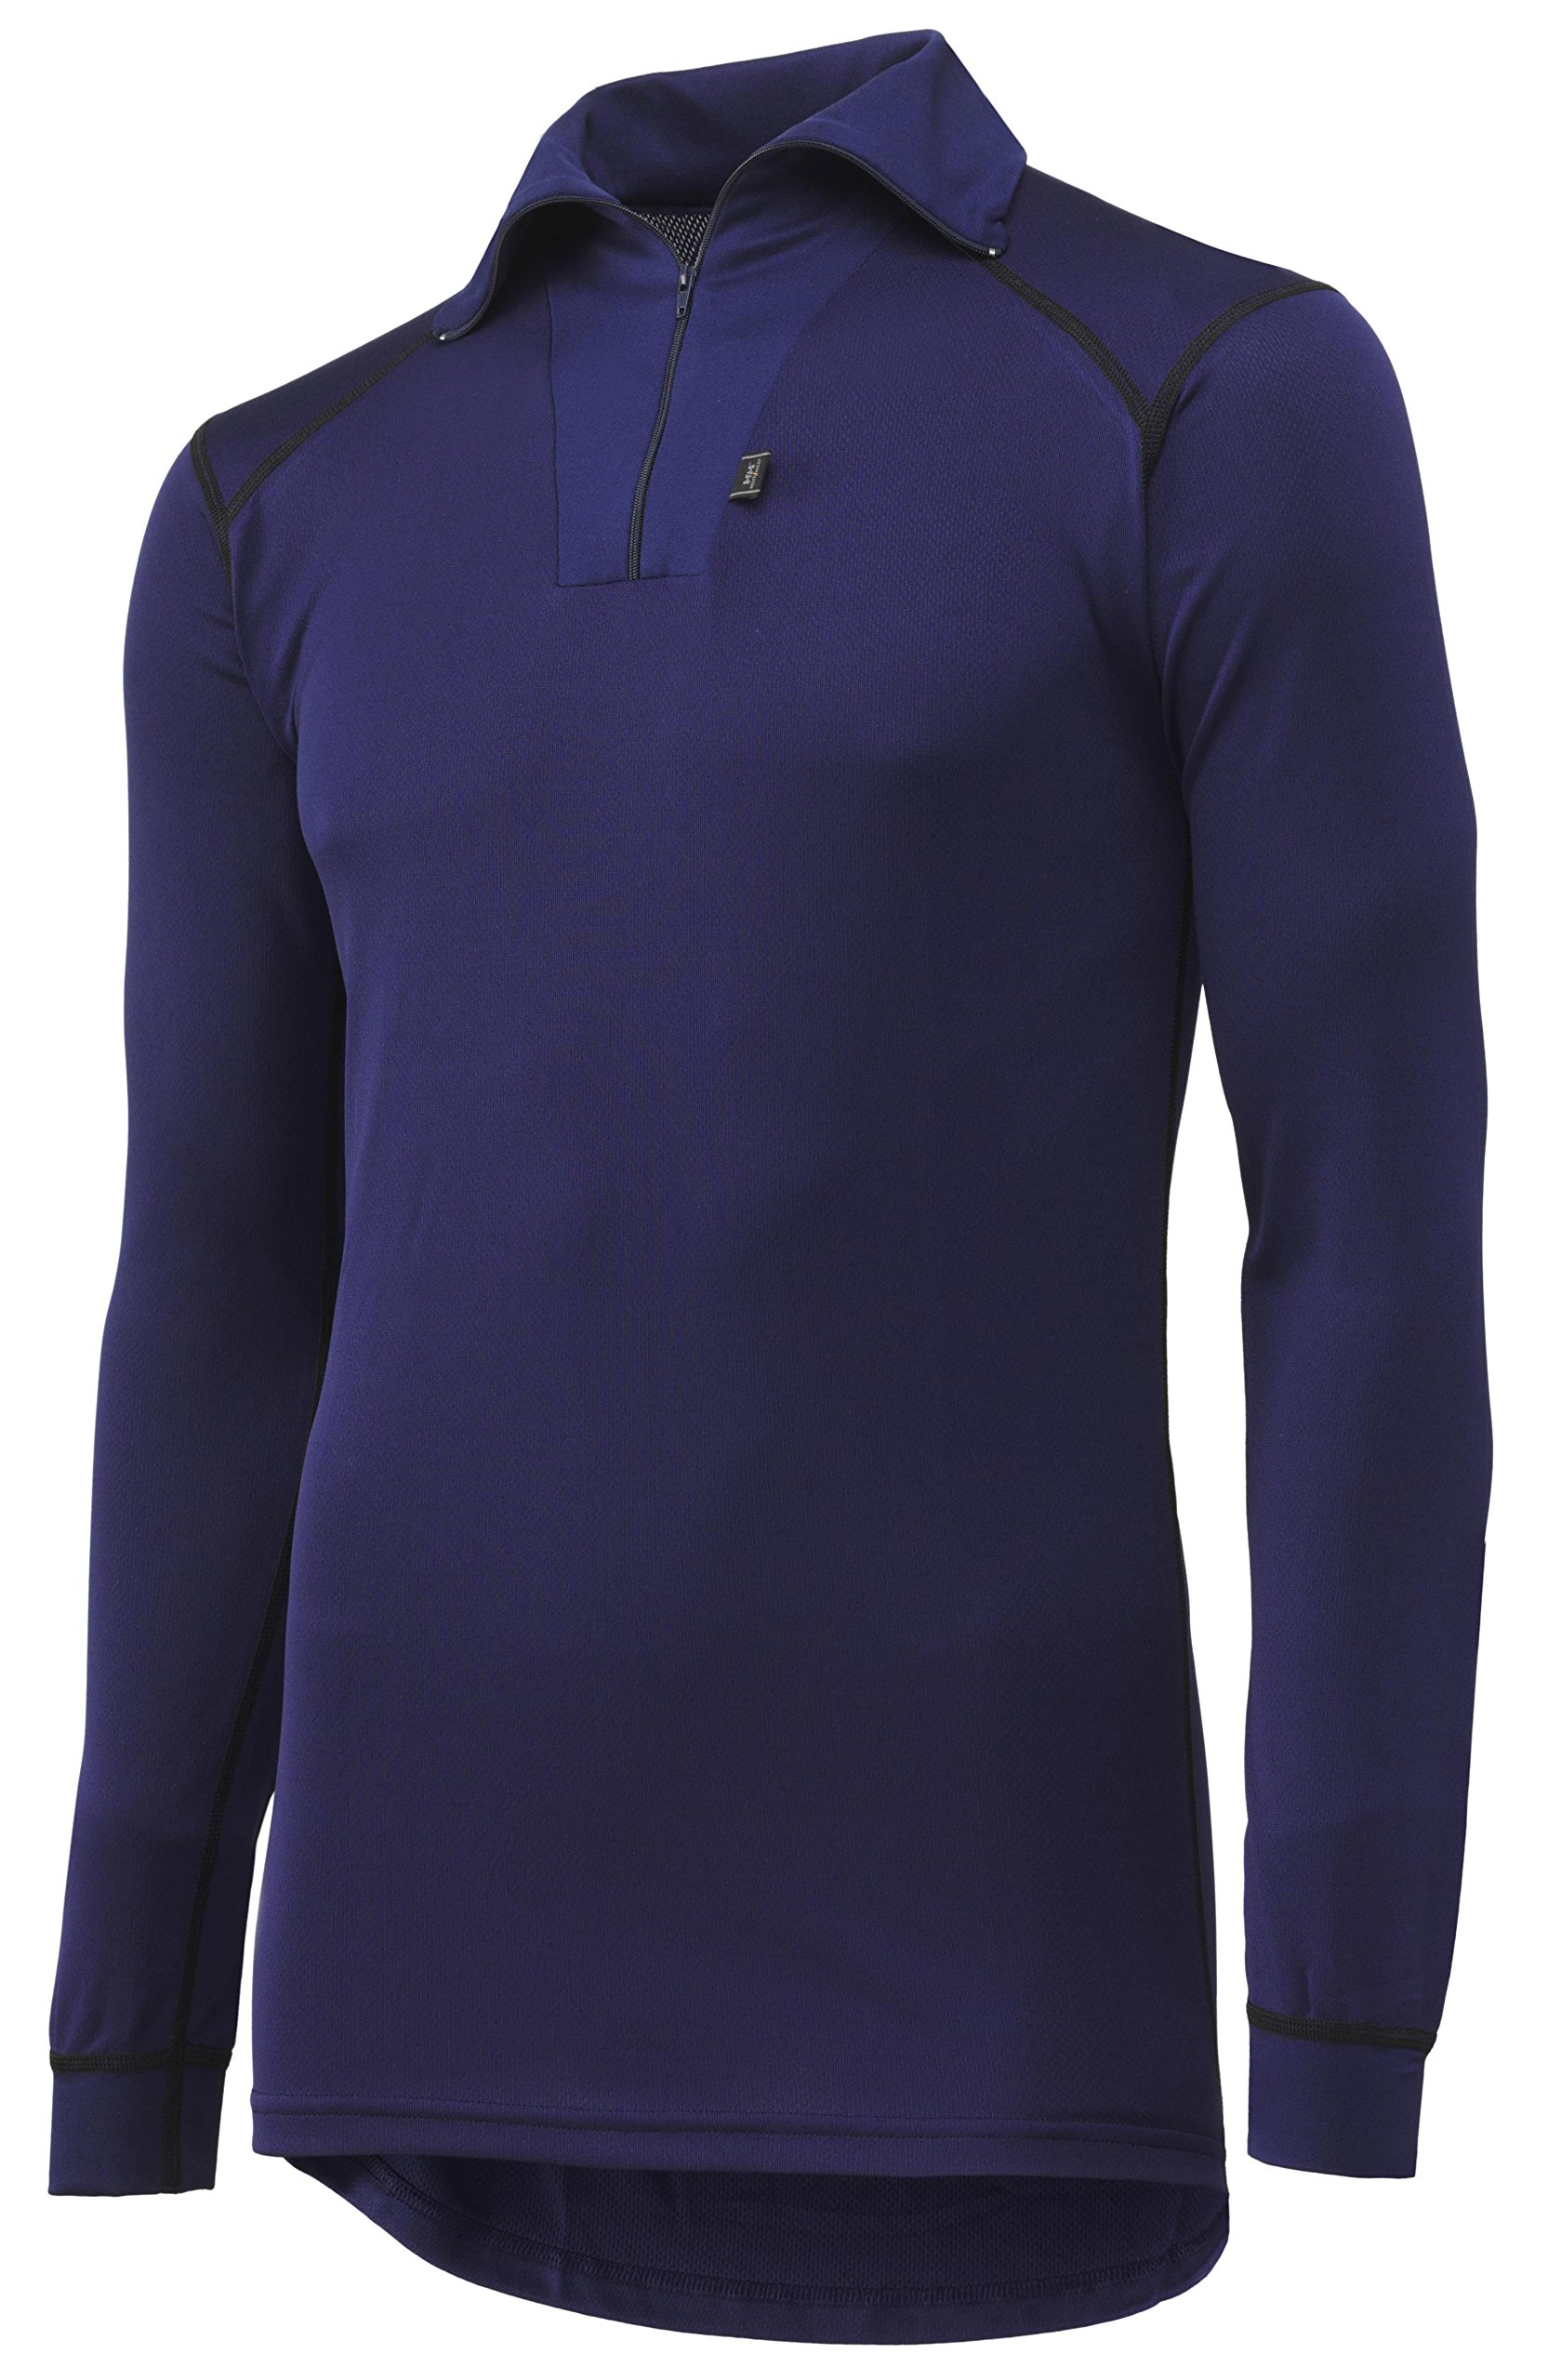 Helly Hansen 75017_590-XL Kastrup With Zip Poloshirt Long Sleeve, X-Large, Navy Blue